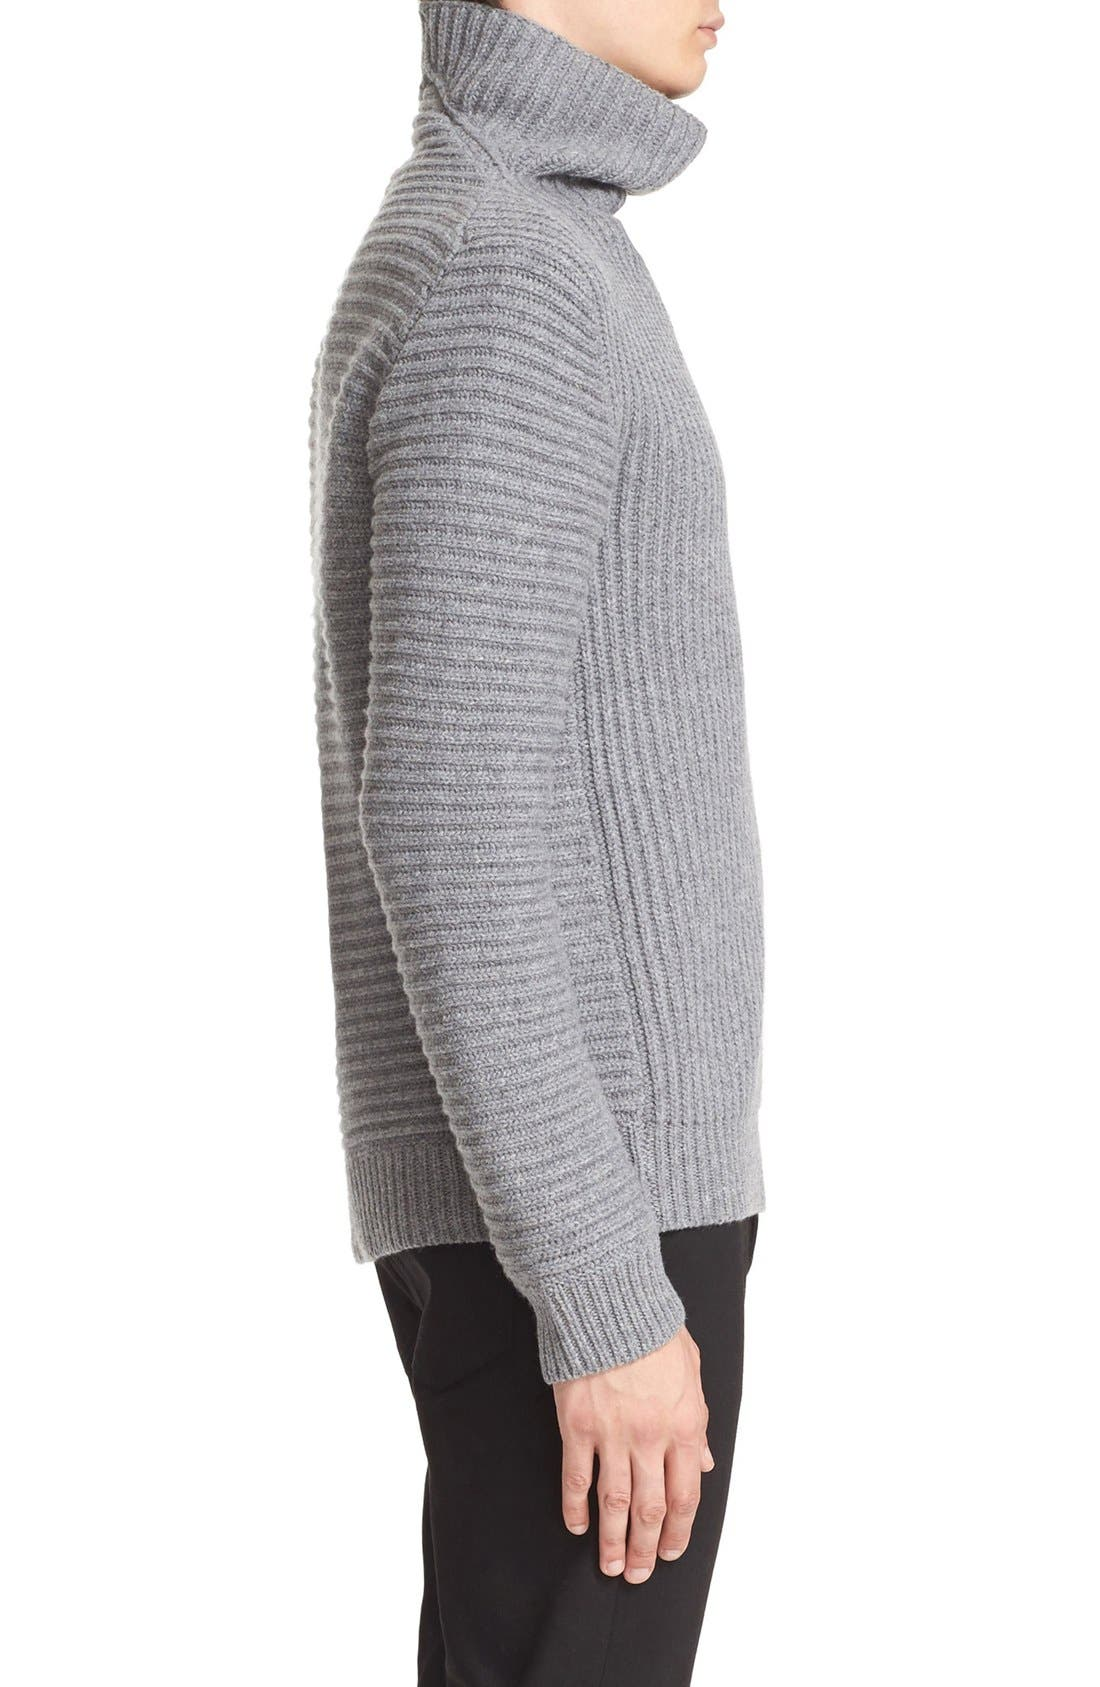 ACNE STUDIOS,                             Kalle Ribbed Turtleneck Sweater,                             Alternate thumbnail 4, color,                             020